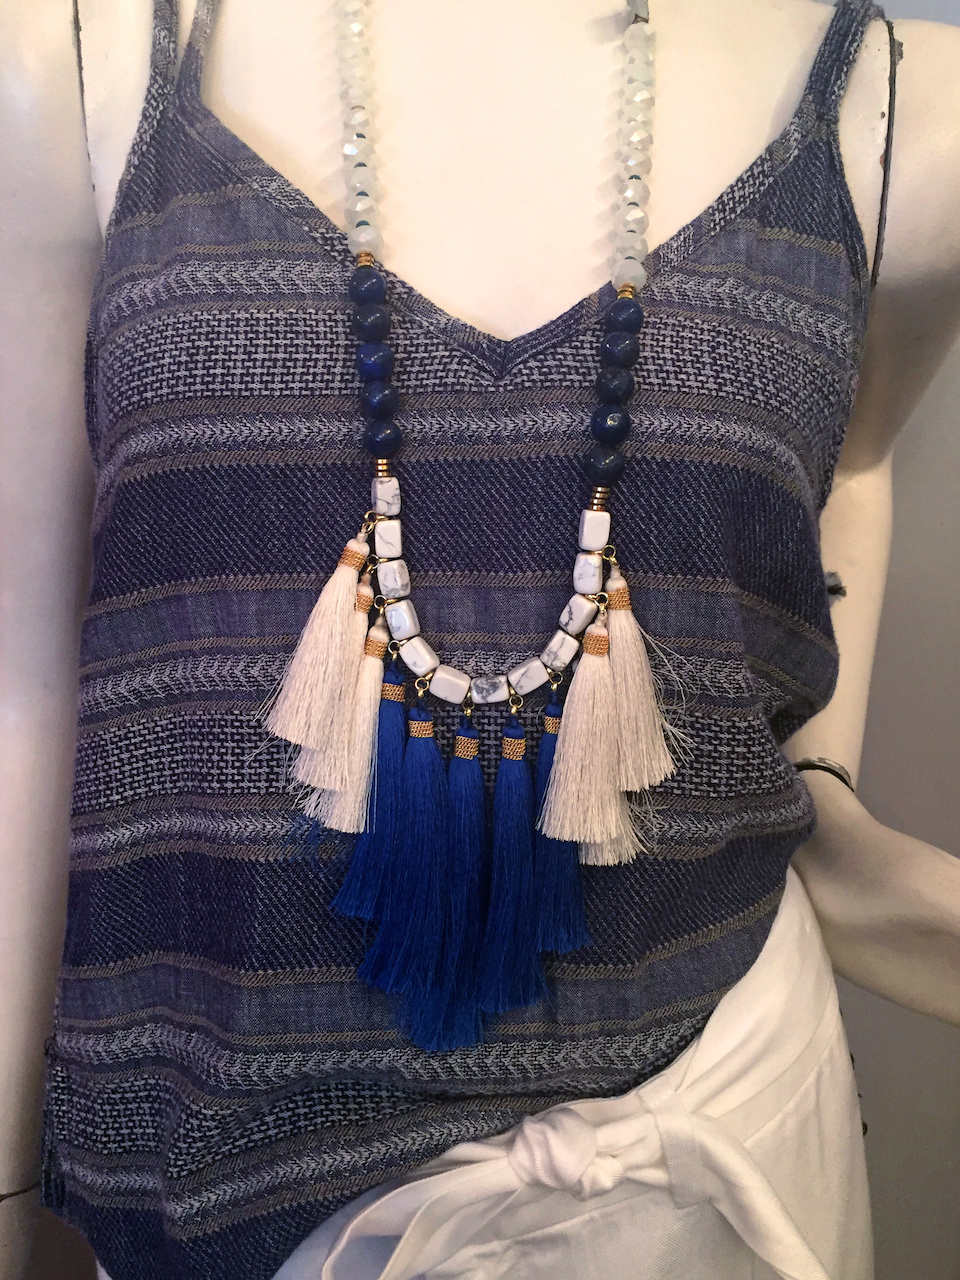 From Theadora Abbeyluxe: Blue and white tassel necklace, $88